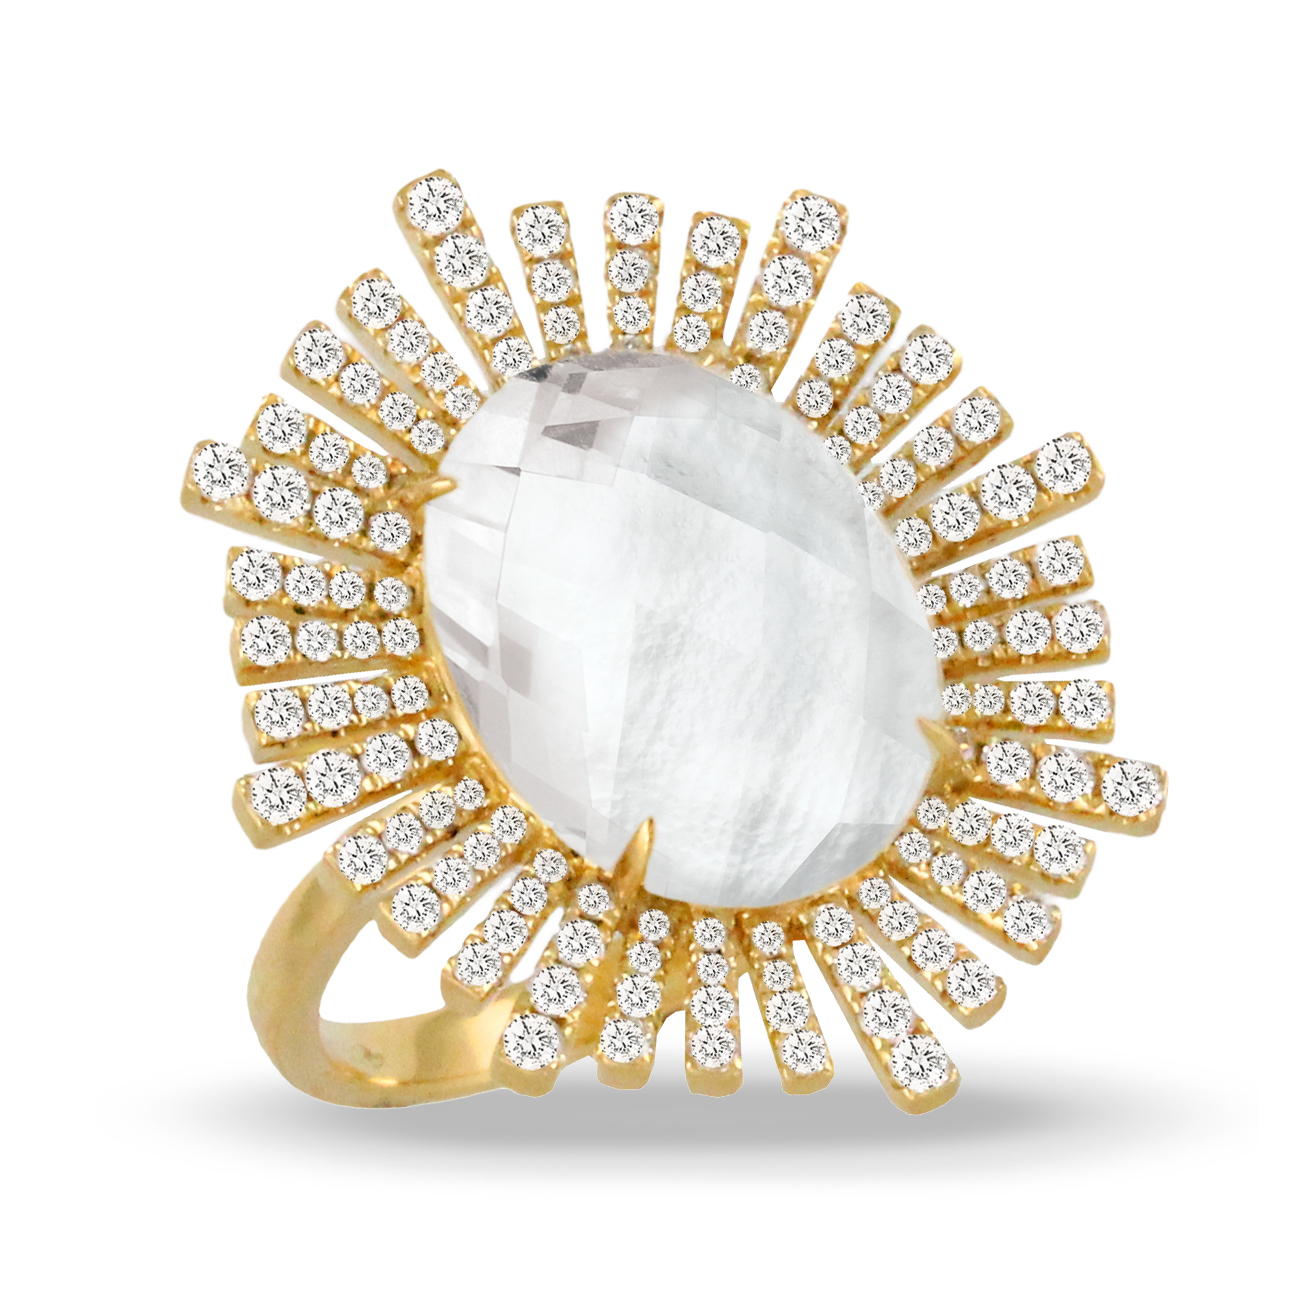 18K Diamond Pearl Ring - 18K Yellow Gold Diamond Ring With Clear Quartz Over White Mother Of Pearl